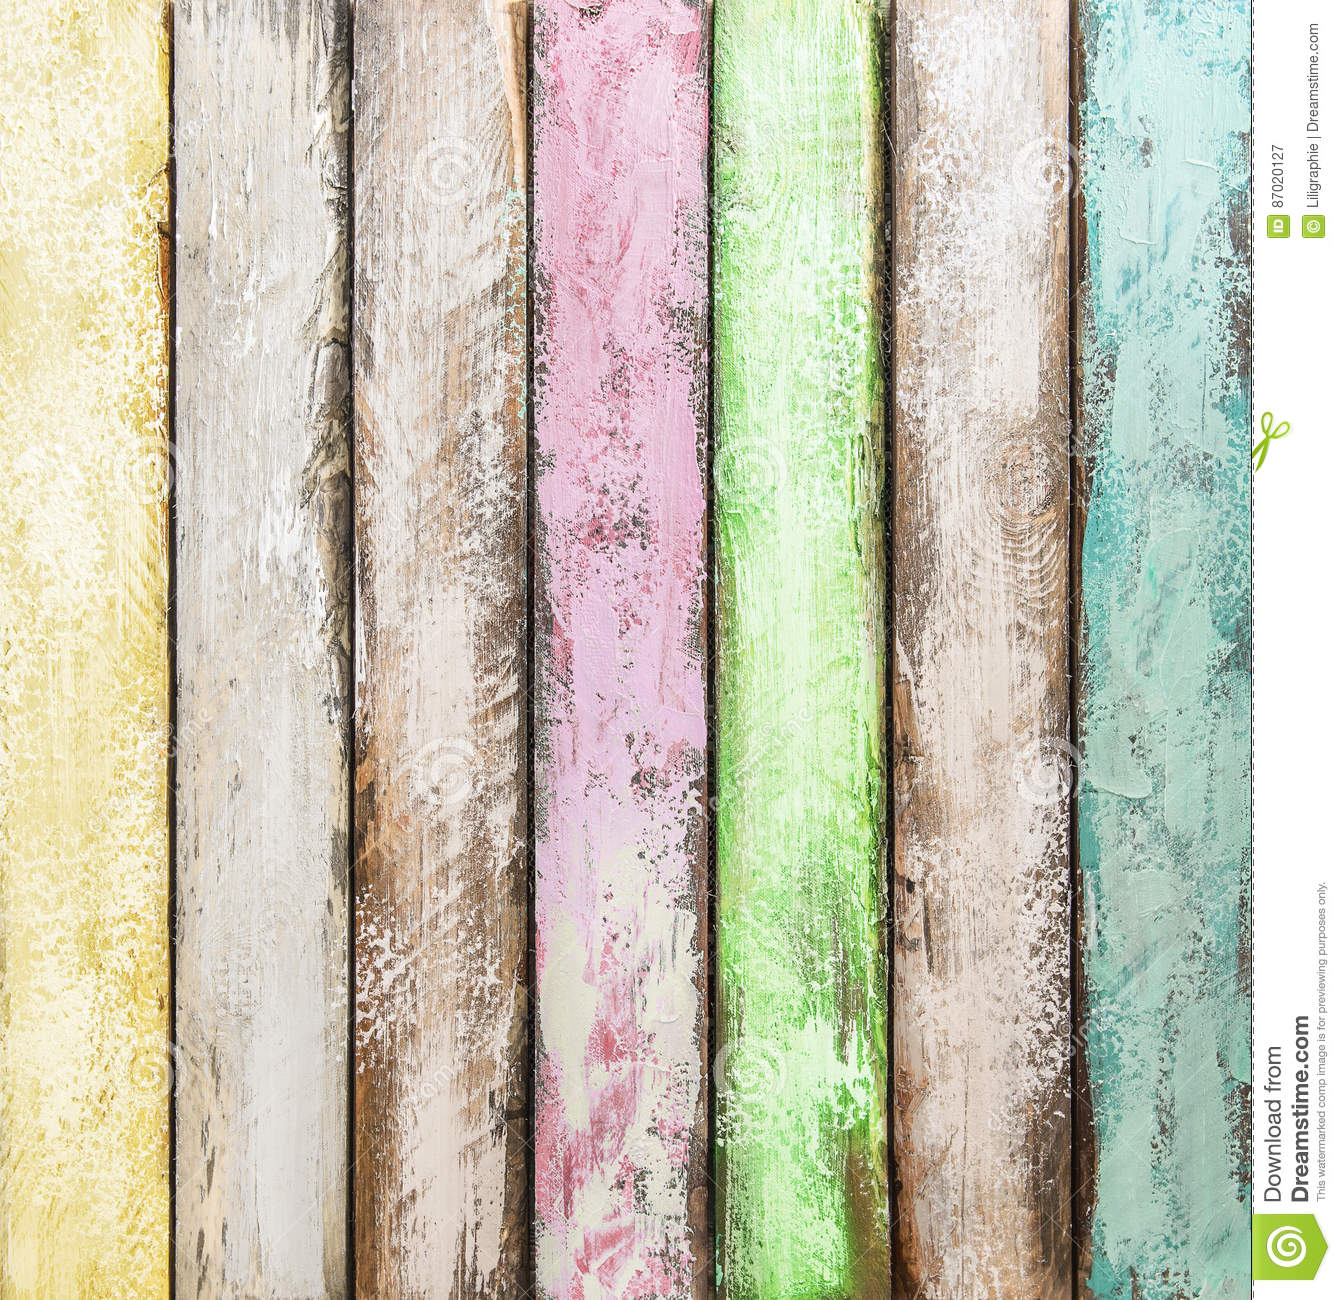 Wood background texture wooden tiles free image wood background - Colorful Wooden Tiles Painted Wood Background Stock Photo